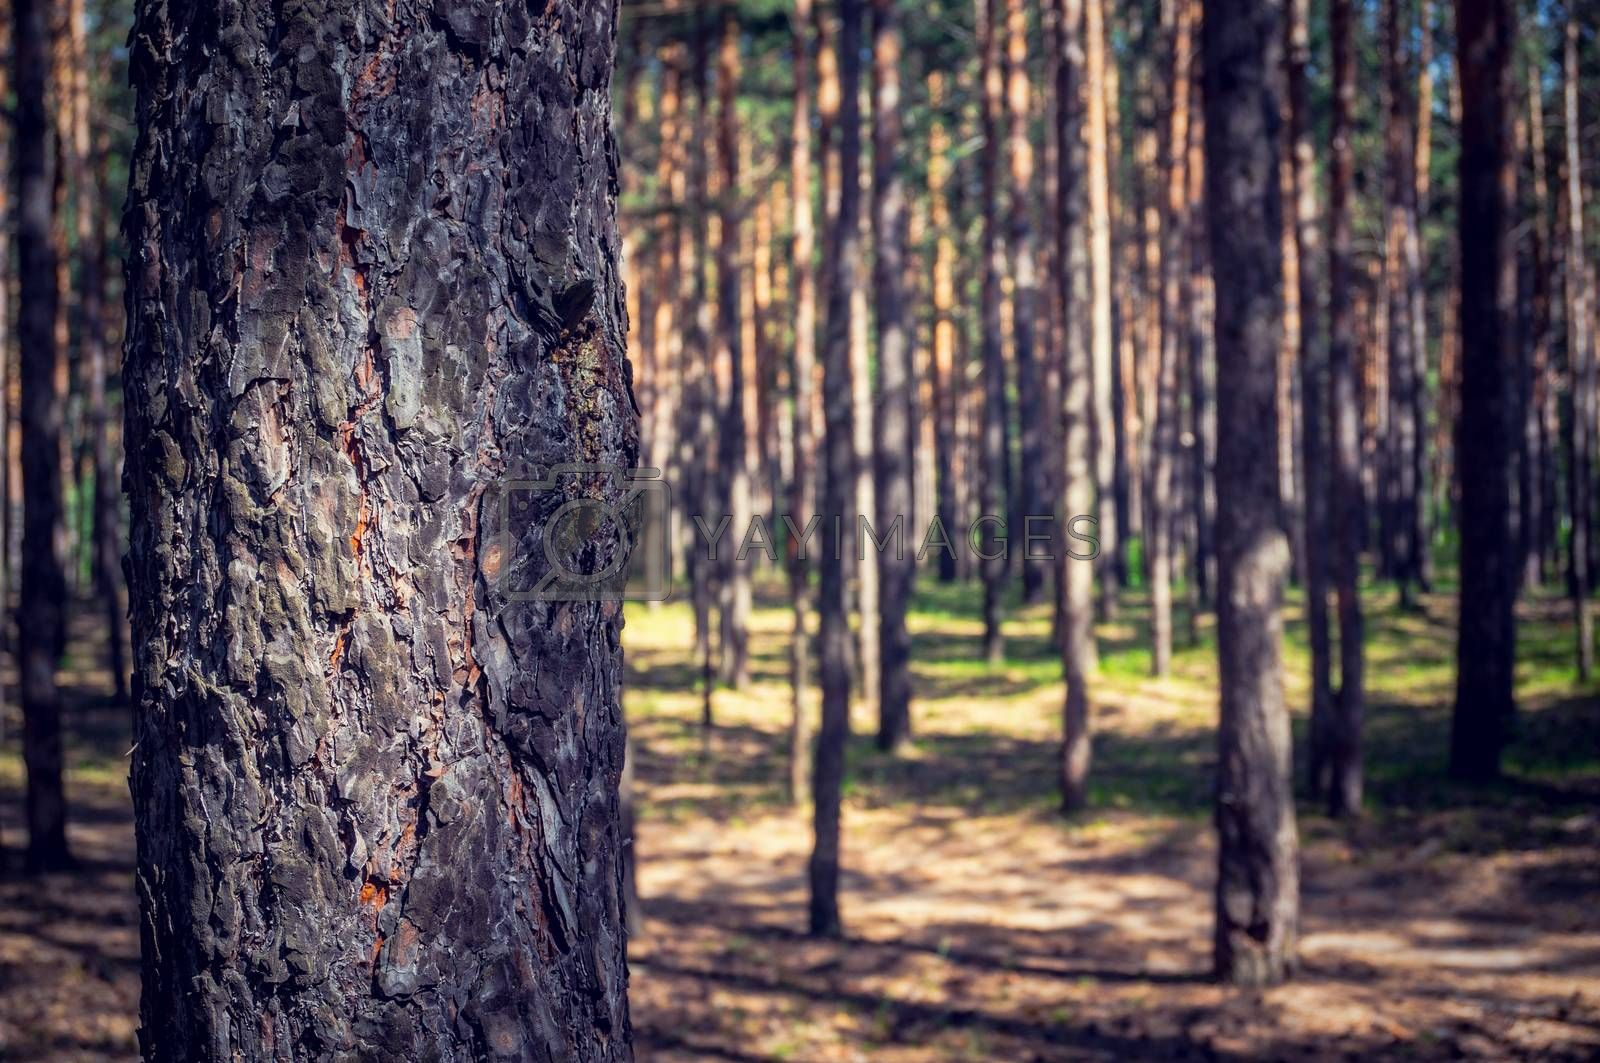 The thick pine forest from the trees. The trunk of the tall pines in the foreground on a blurred background of pine forest.